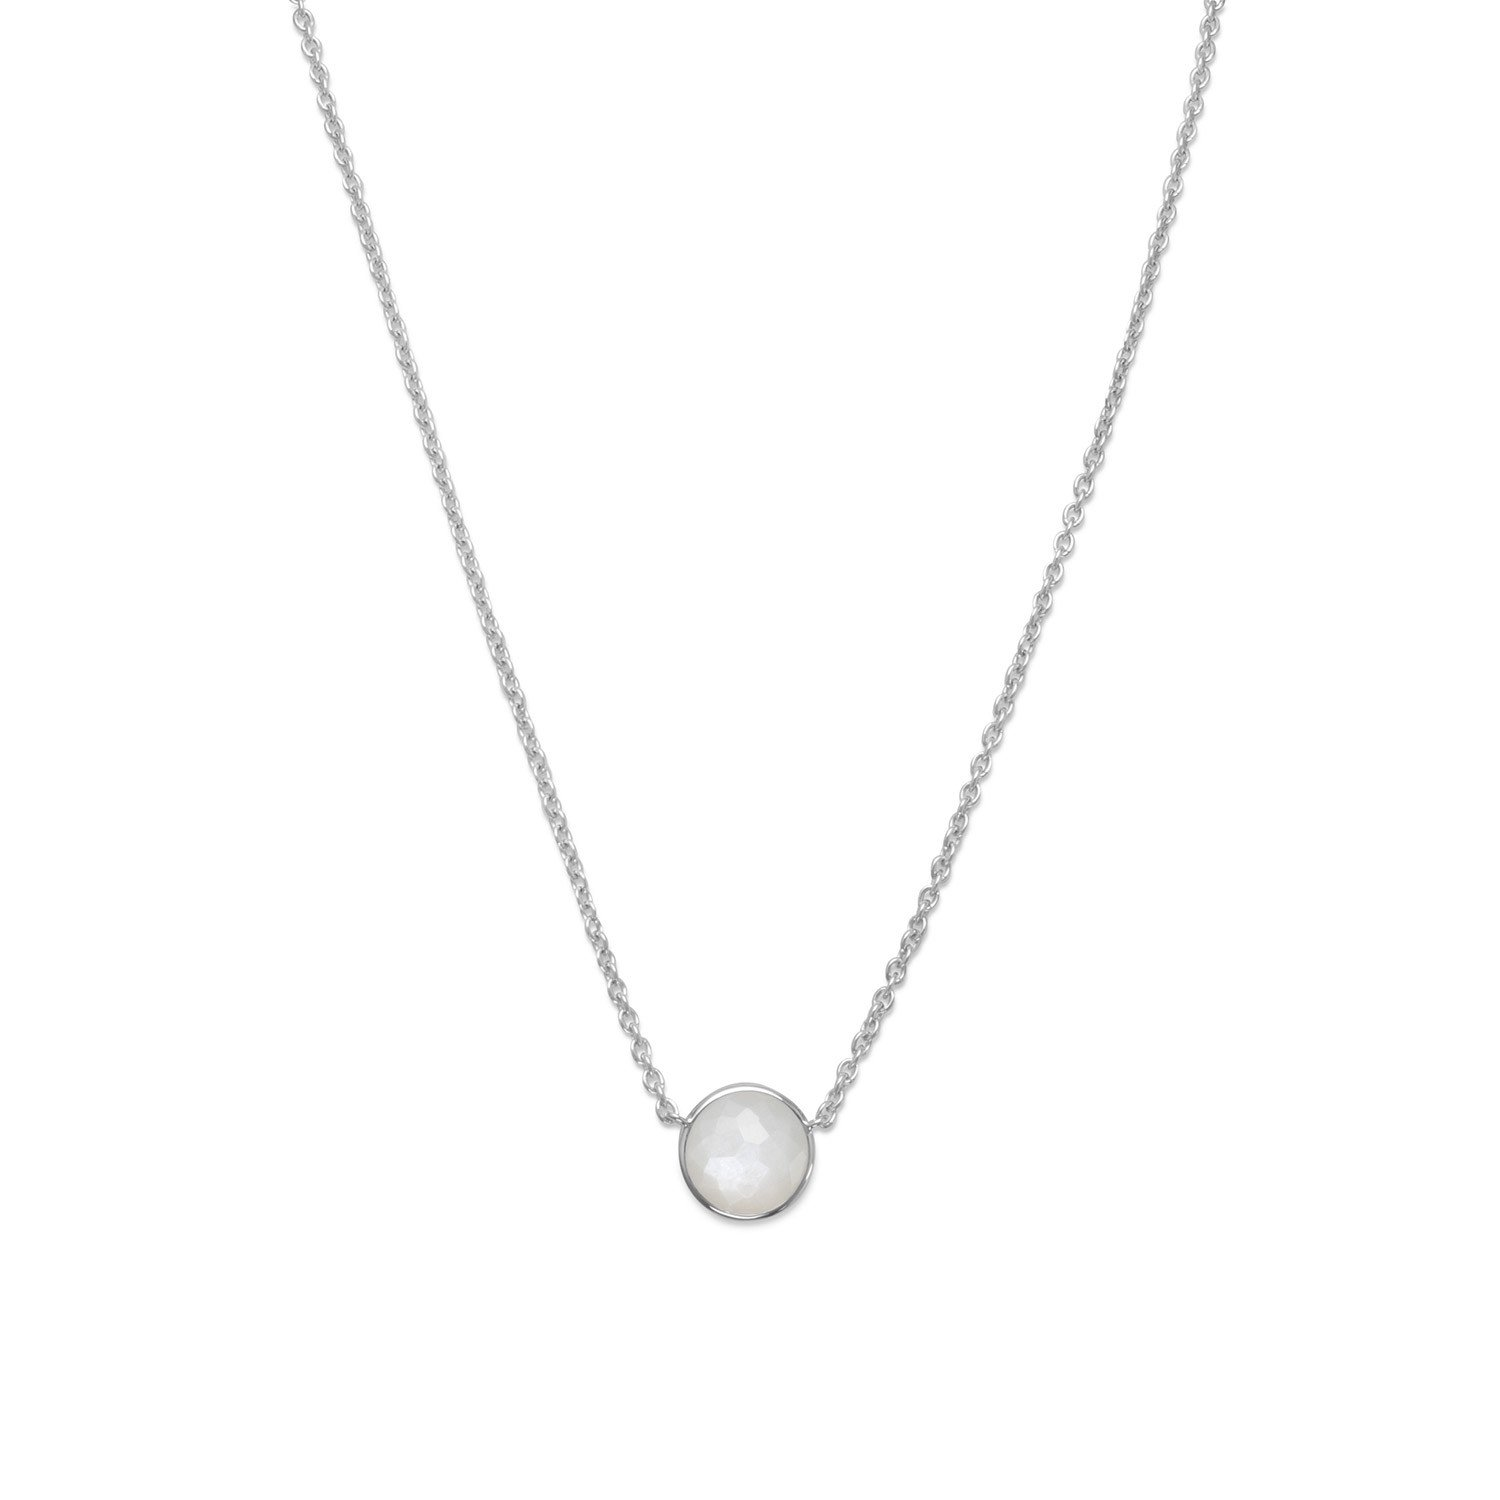 16″ + 2″ Freeform Faceted Moonstone Necklace